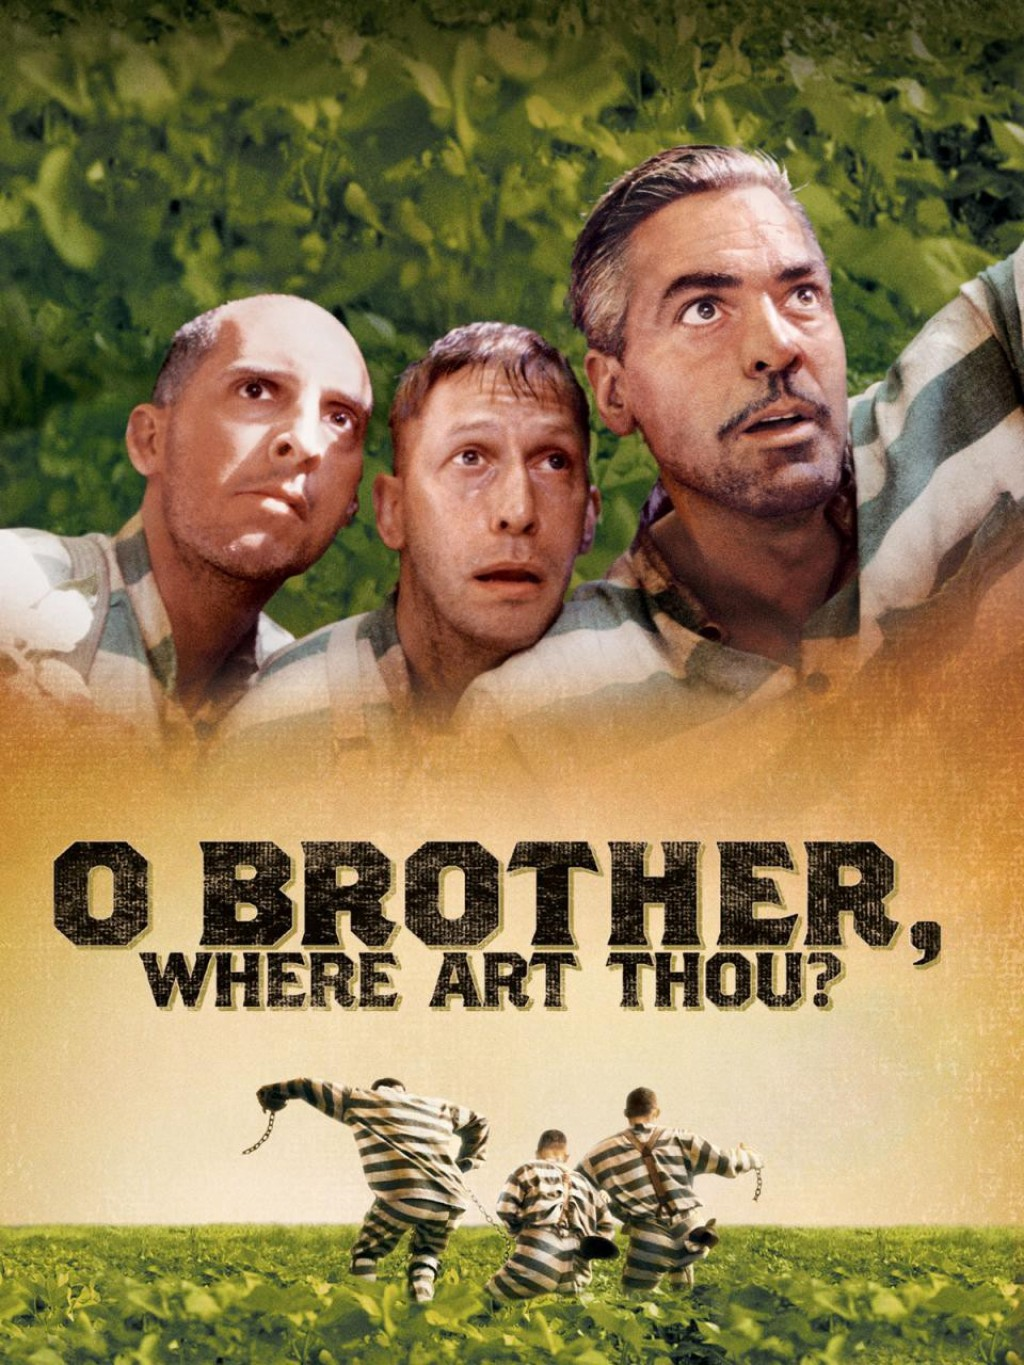 002 O Brother Where Art Thou Essay 1br06napar7lp Gs6wzm Ug Striking And The Odyssey Comparison Vs Compared To Large